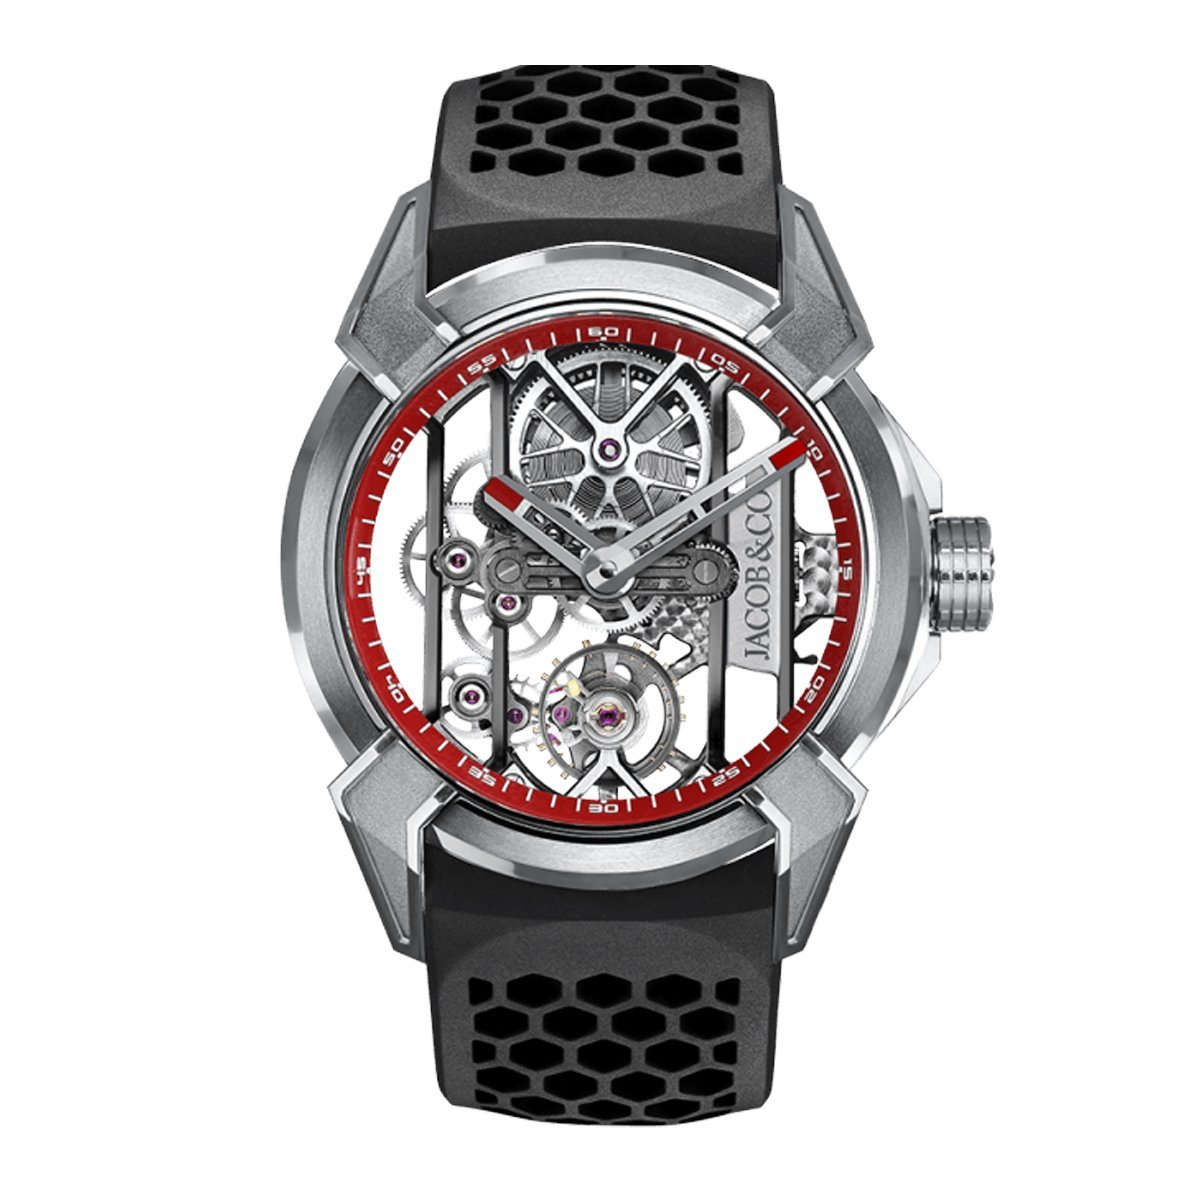 Jacob & Co. Epic X Skeleton Titanium Red - Watches & Crystals